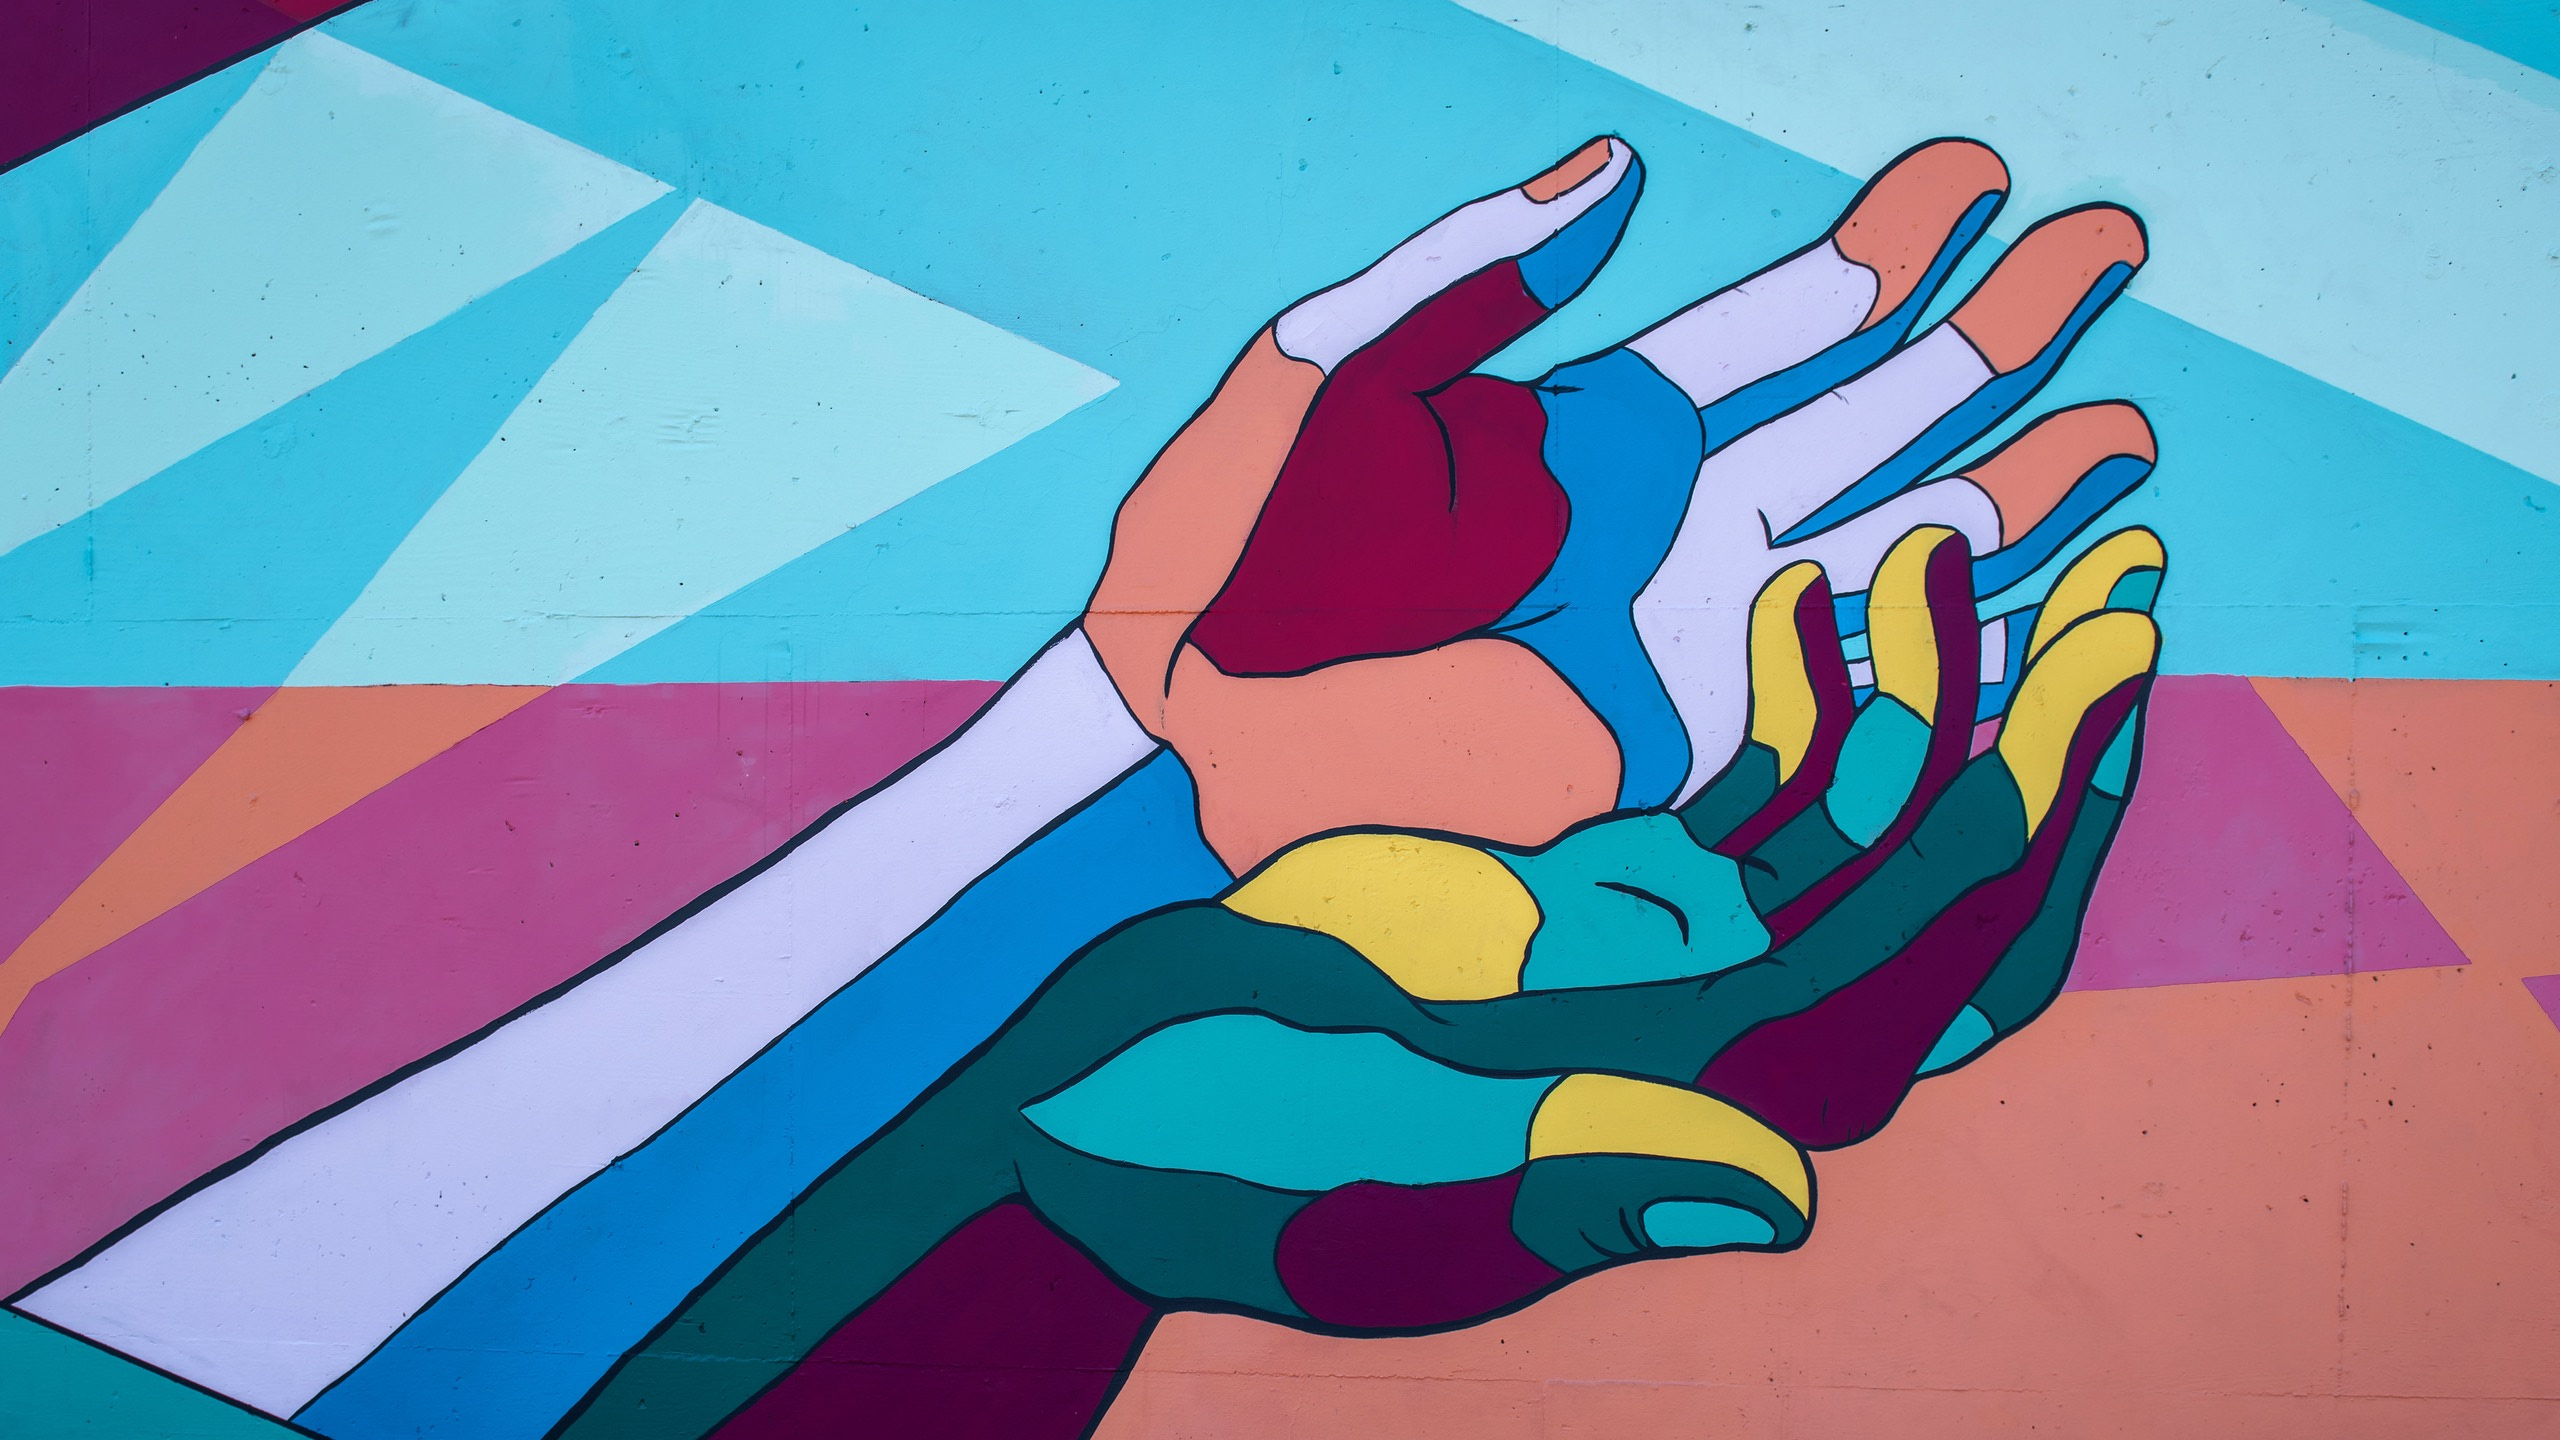 Artwork of two multicoloured hands reaching upwards